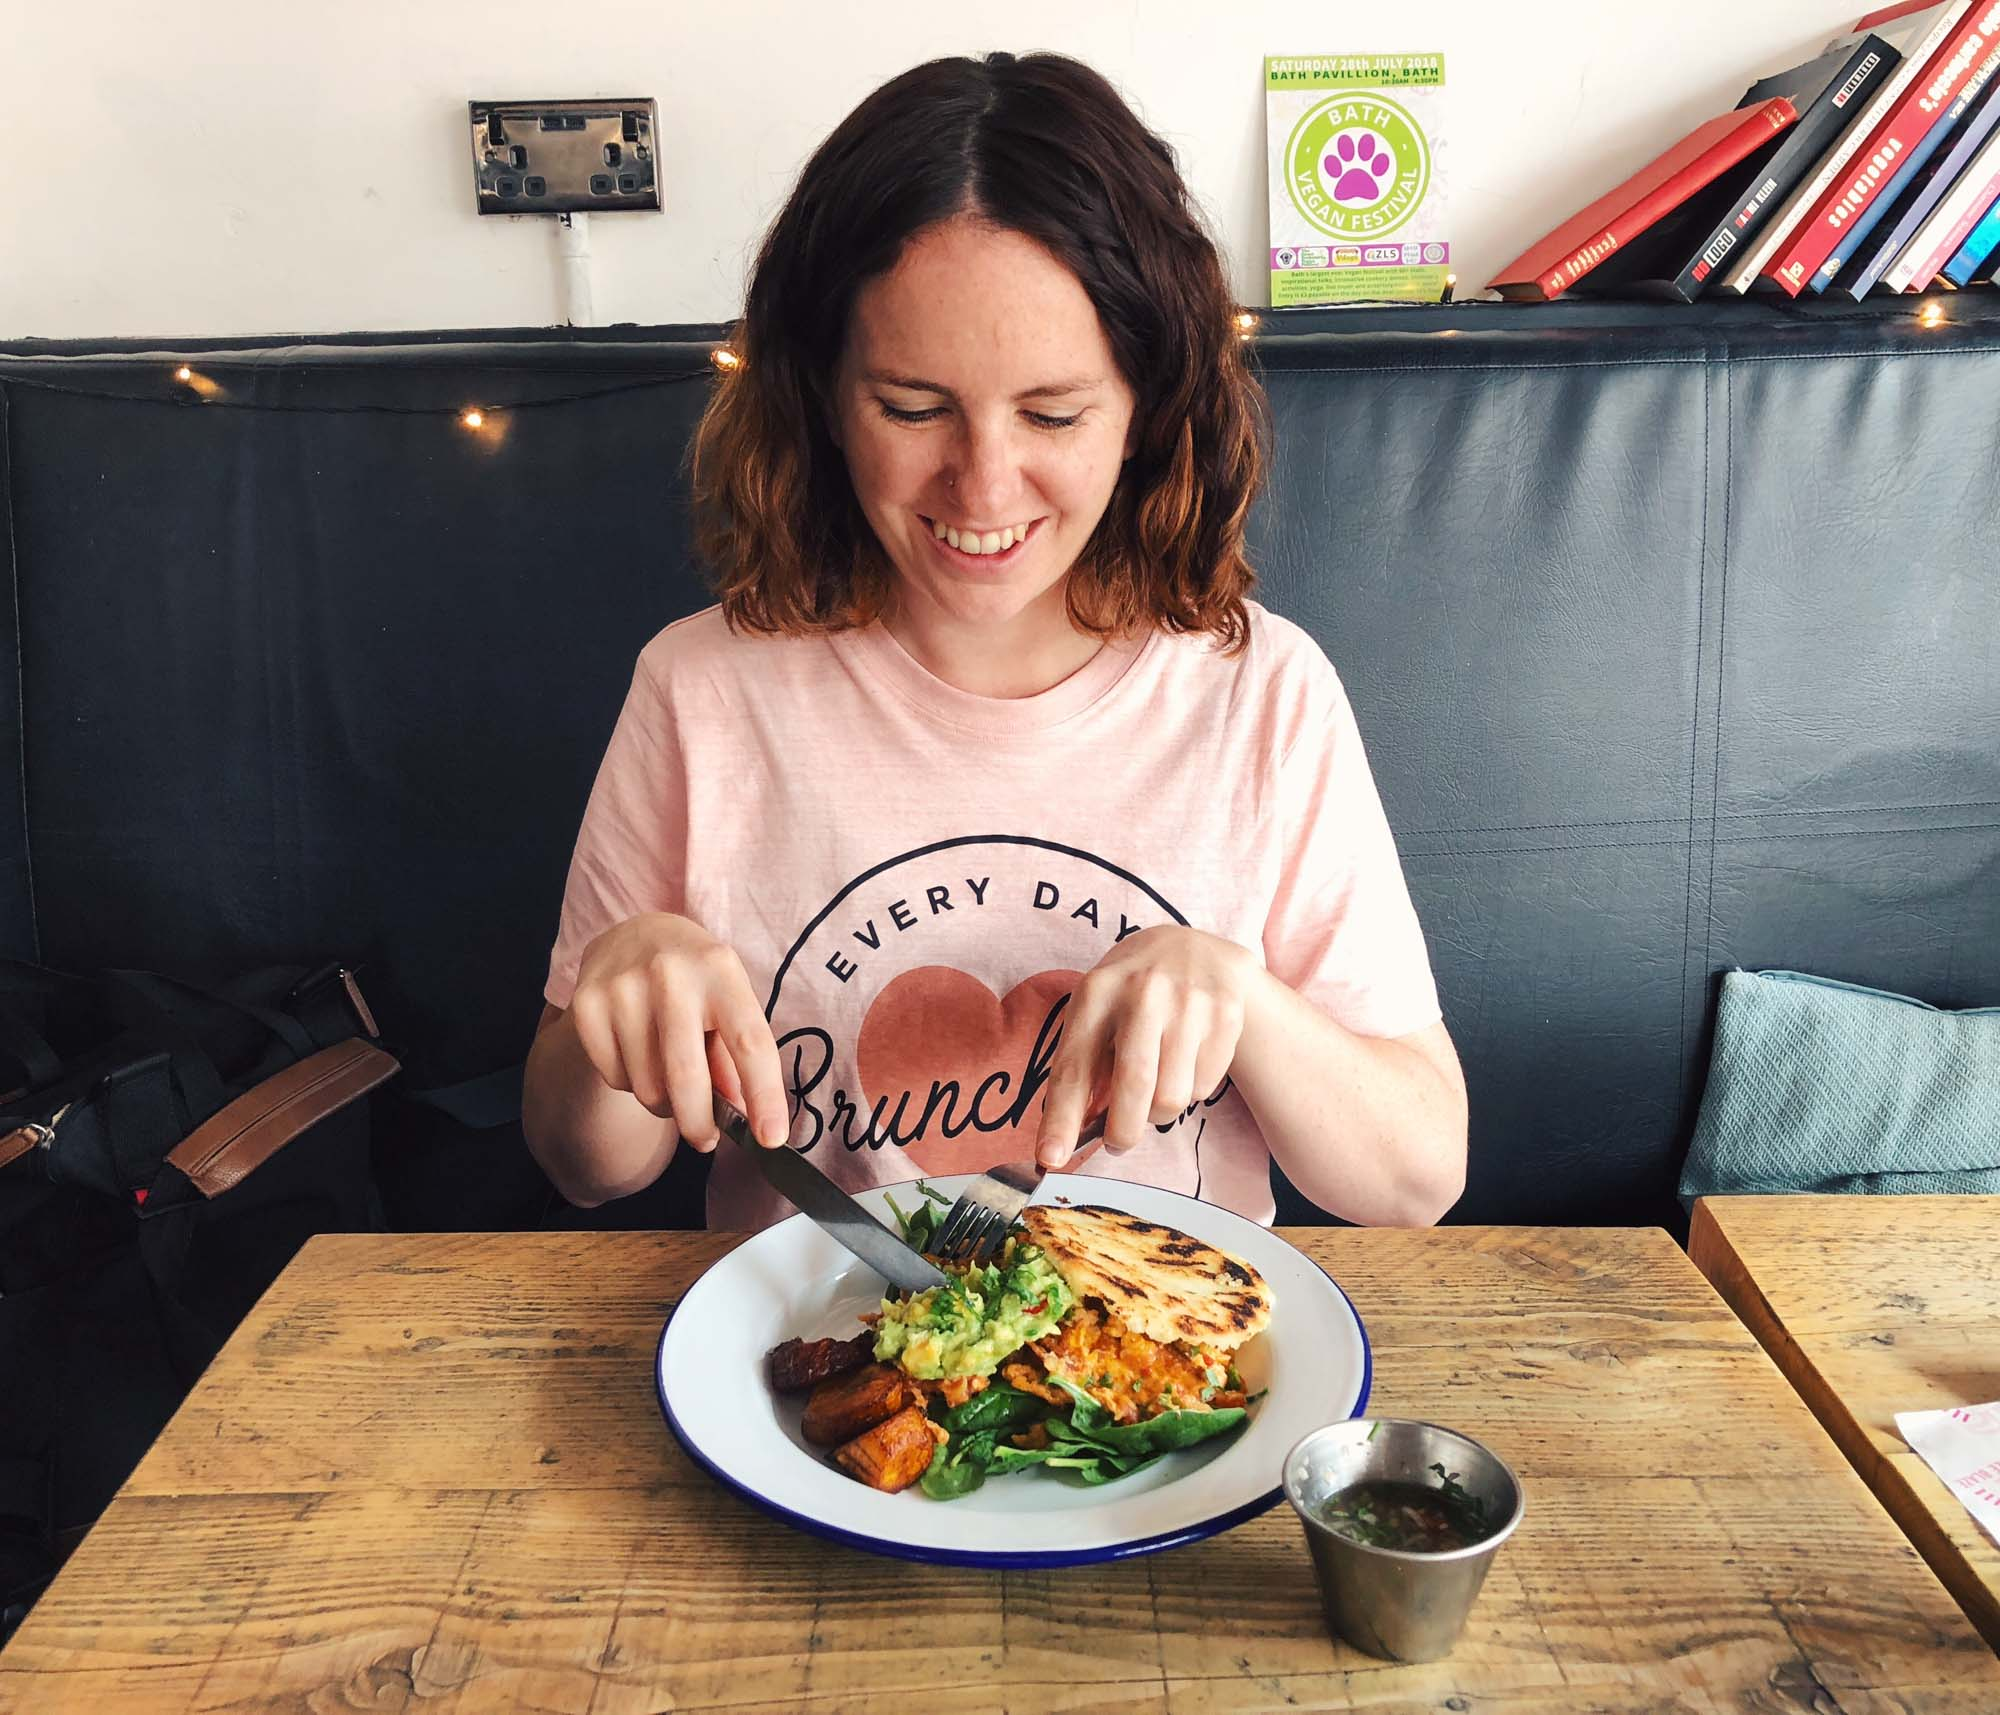 Best brunches in Bristol - MAIZE BLAZE